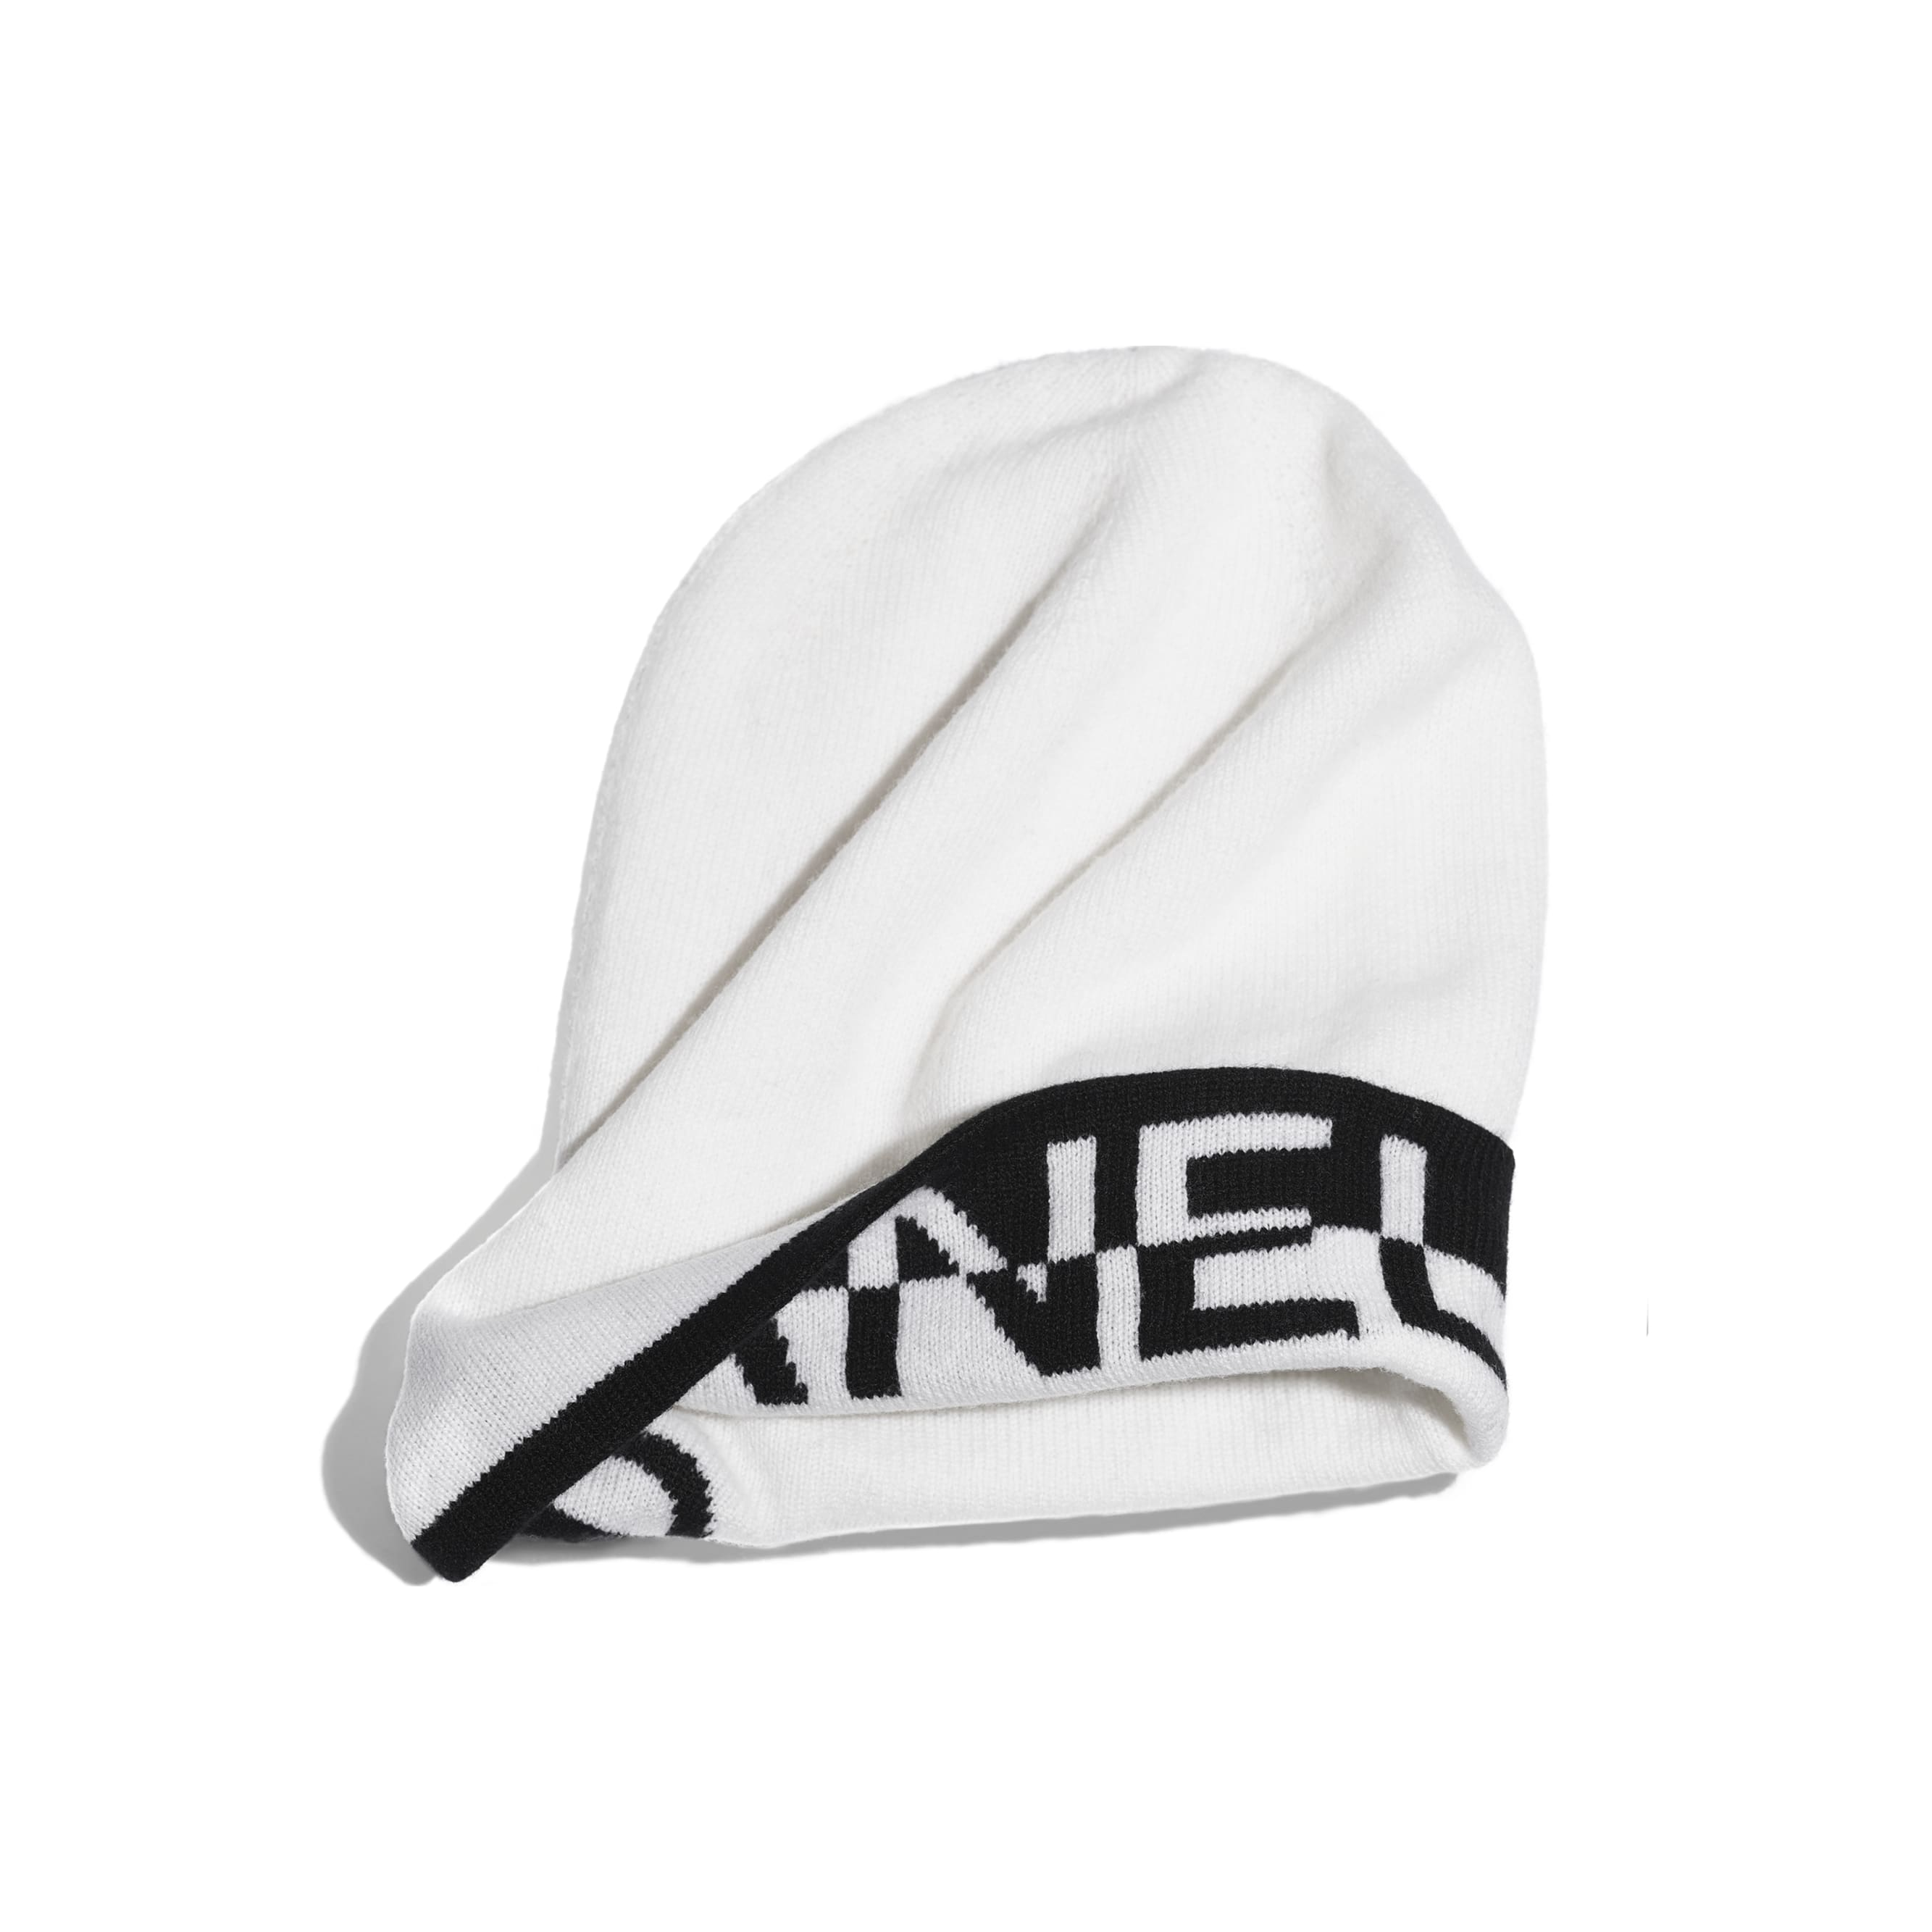 Beanie - White & Black - Cashmere - CHANEL - Alternative view - see standard sized version